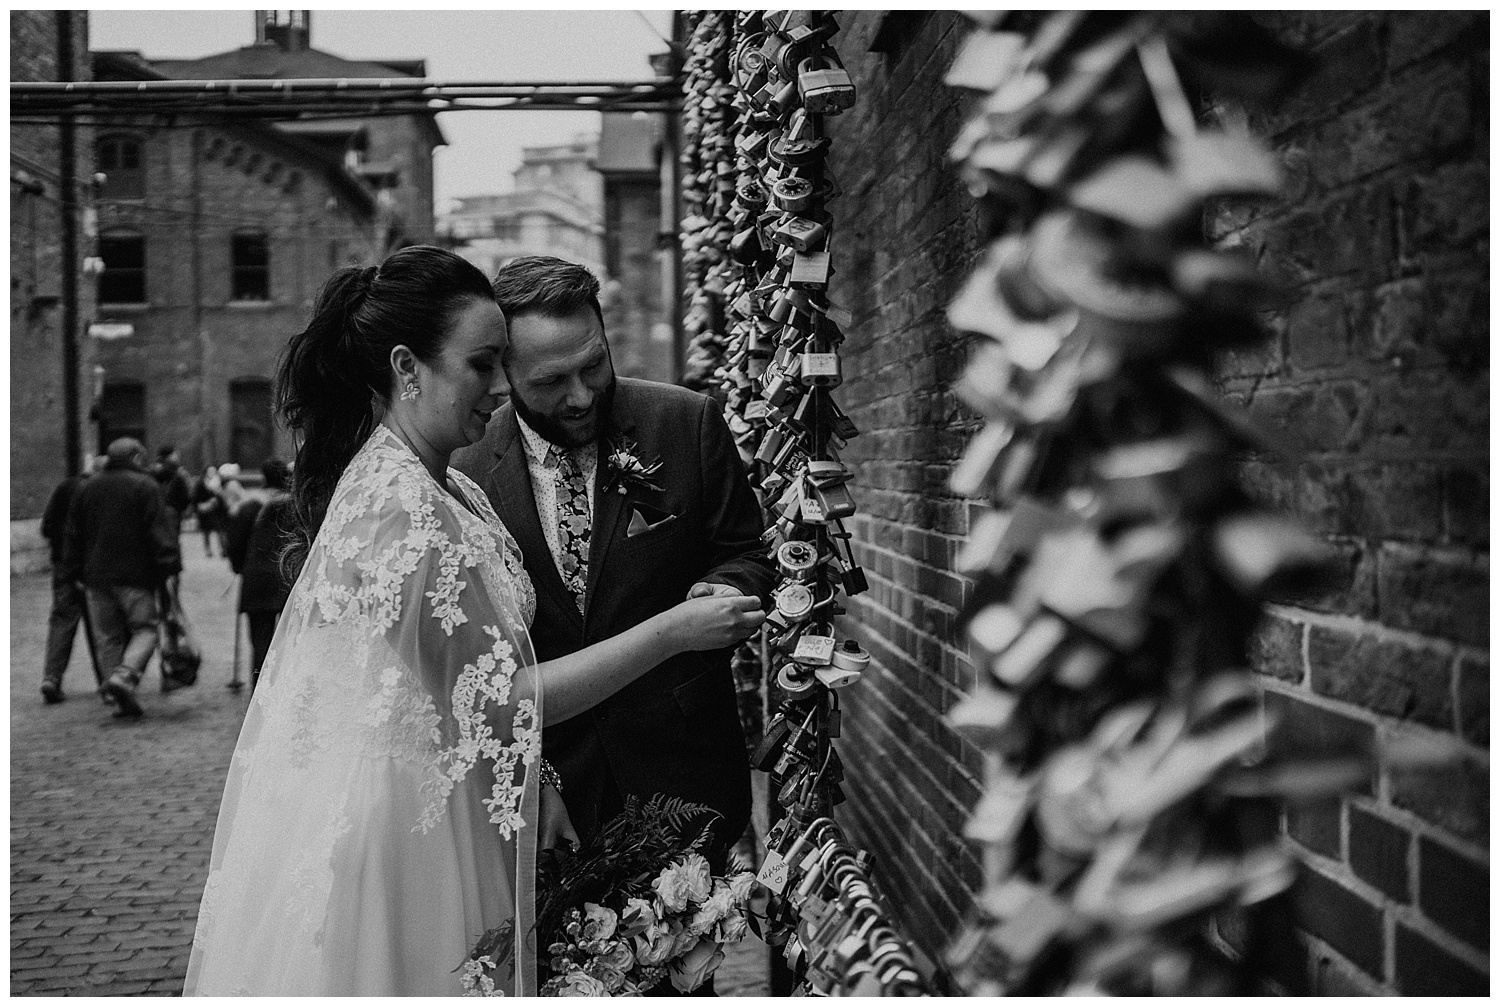 Katie Marie Photography | Archeo Wedding Arta Gallery Wedding | Distillery District Wedding | Toronto Wedding Photographer | Hamilton Toronto Ontario Wedding Photographer |_0044.jpg